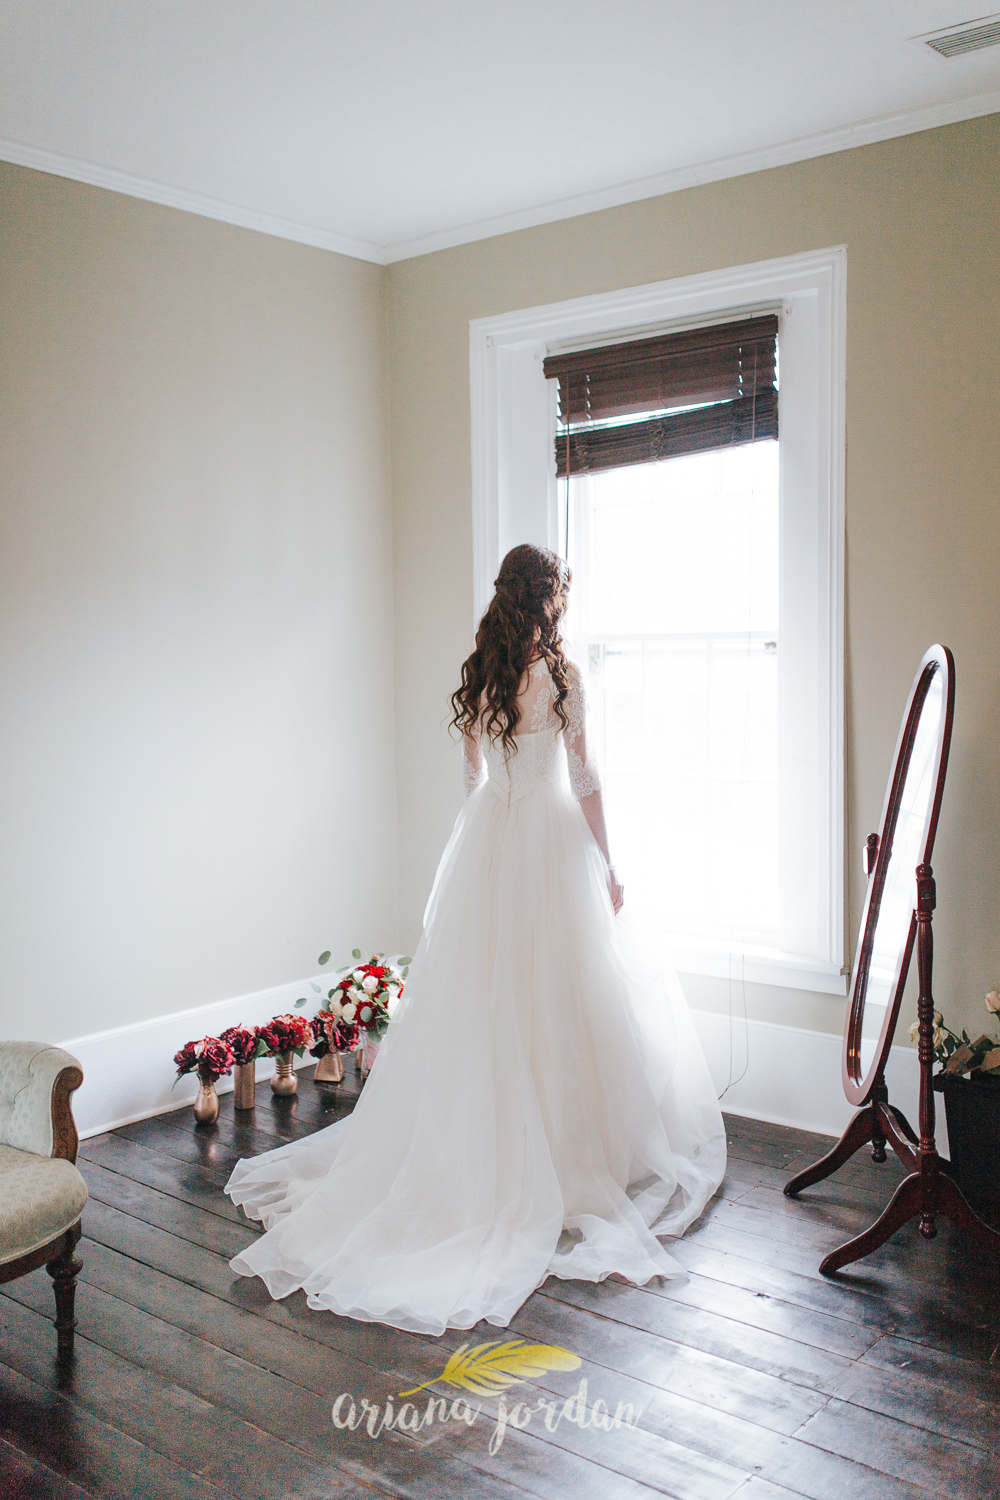 078 - Ariana Jordan - Kentucky Wedding Photographer - Landon & Tabitha 6326.jpg